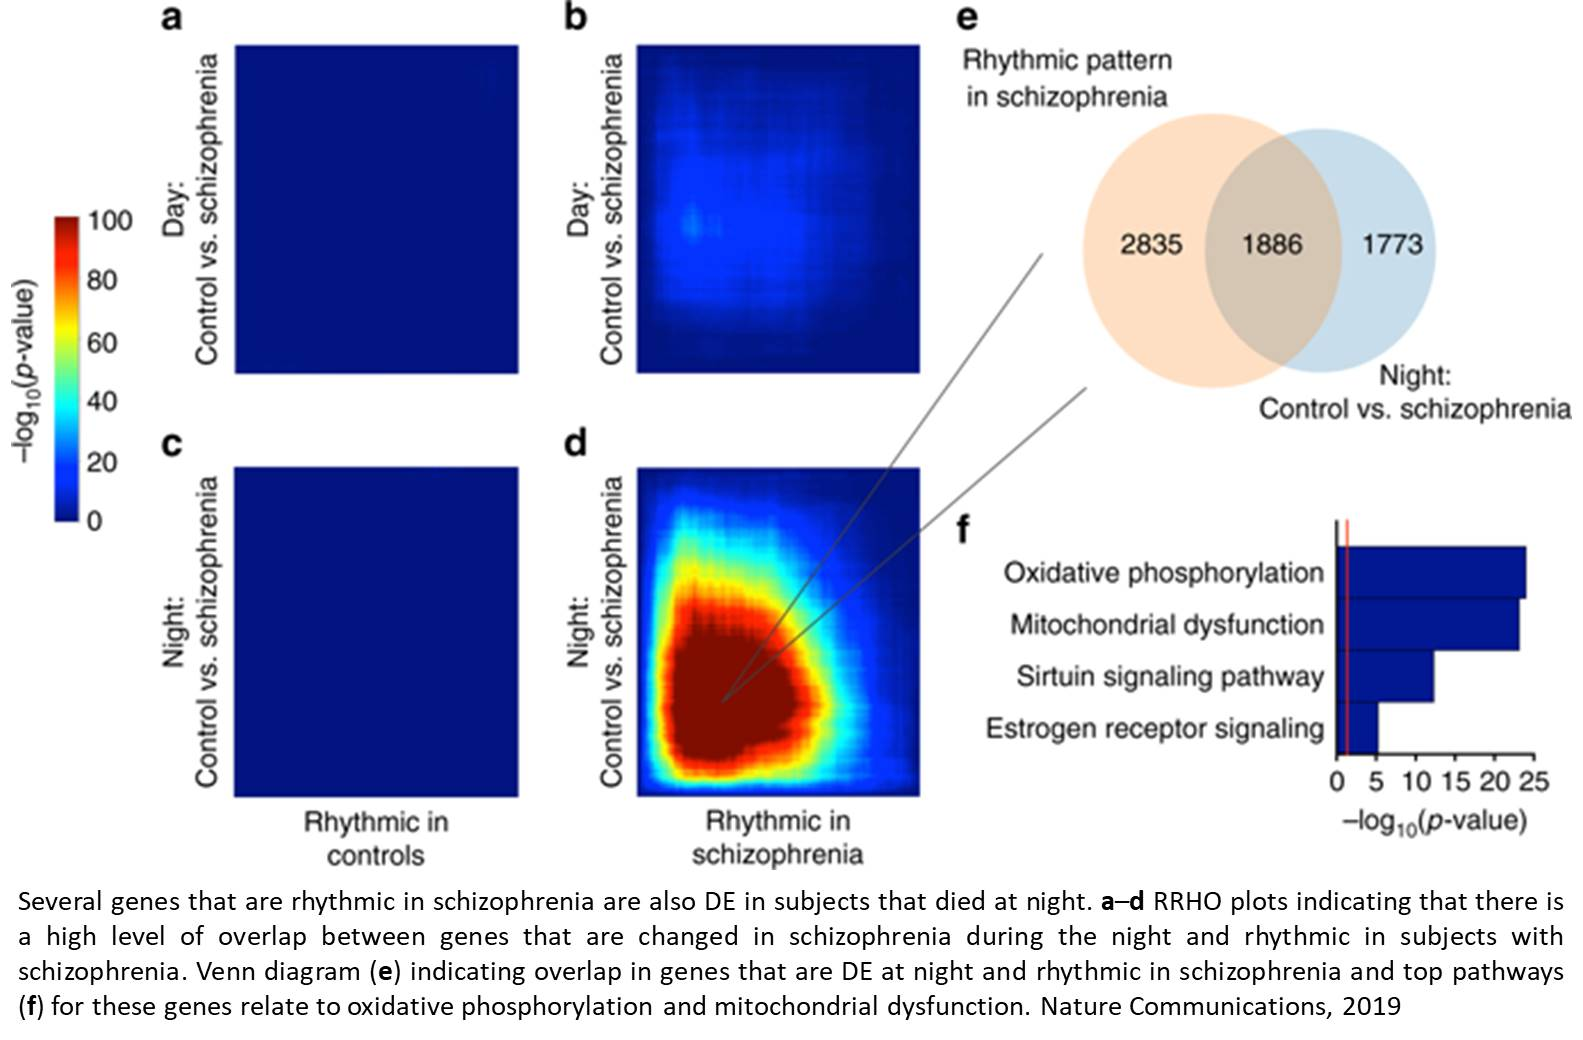 Disruption in circadian gene expression in the prefrontal cortex in schizophrenia